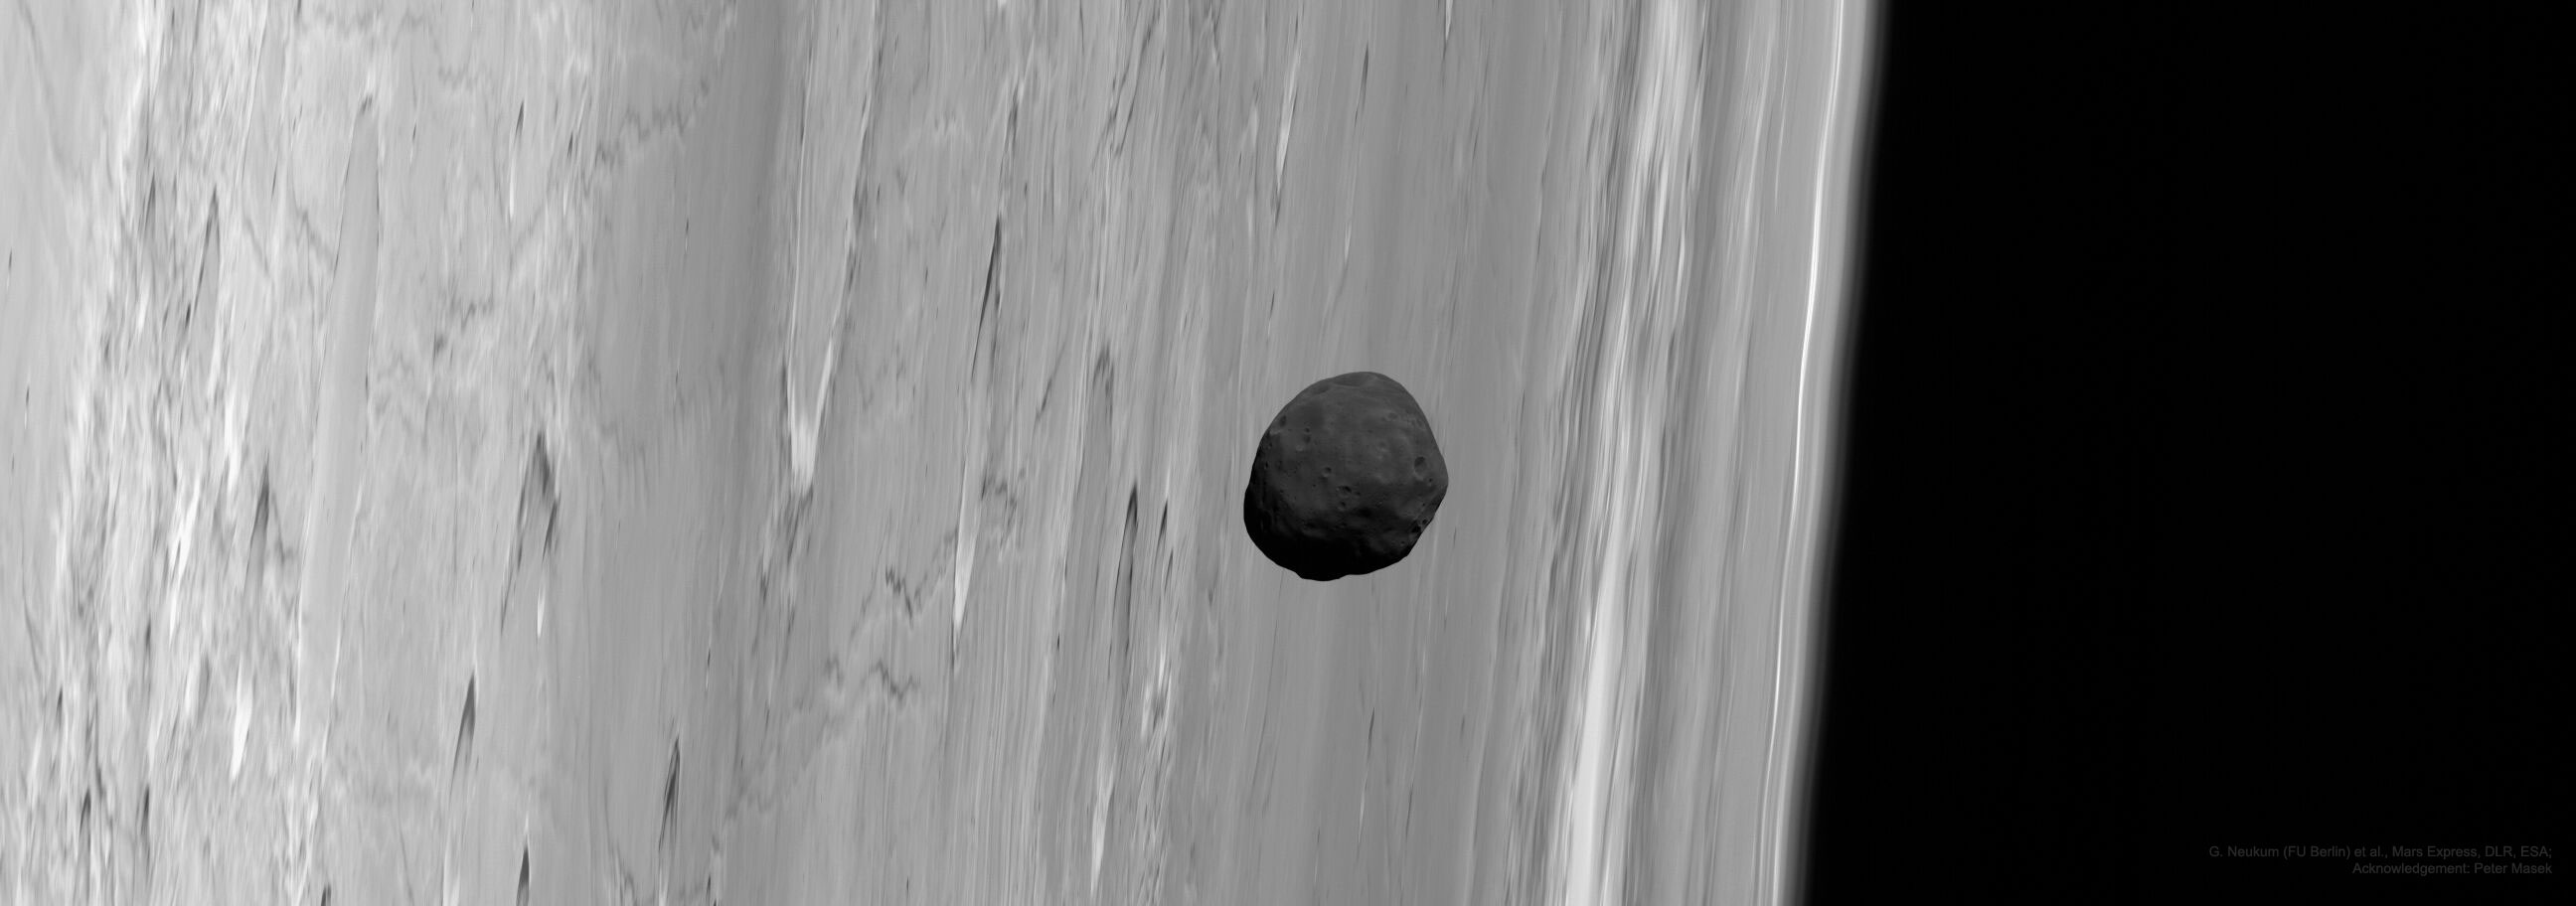 APOD: 2020 November 8 - Martian Moon Phobos from Mars Express